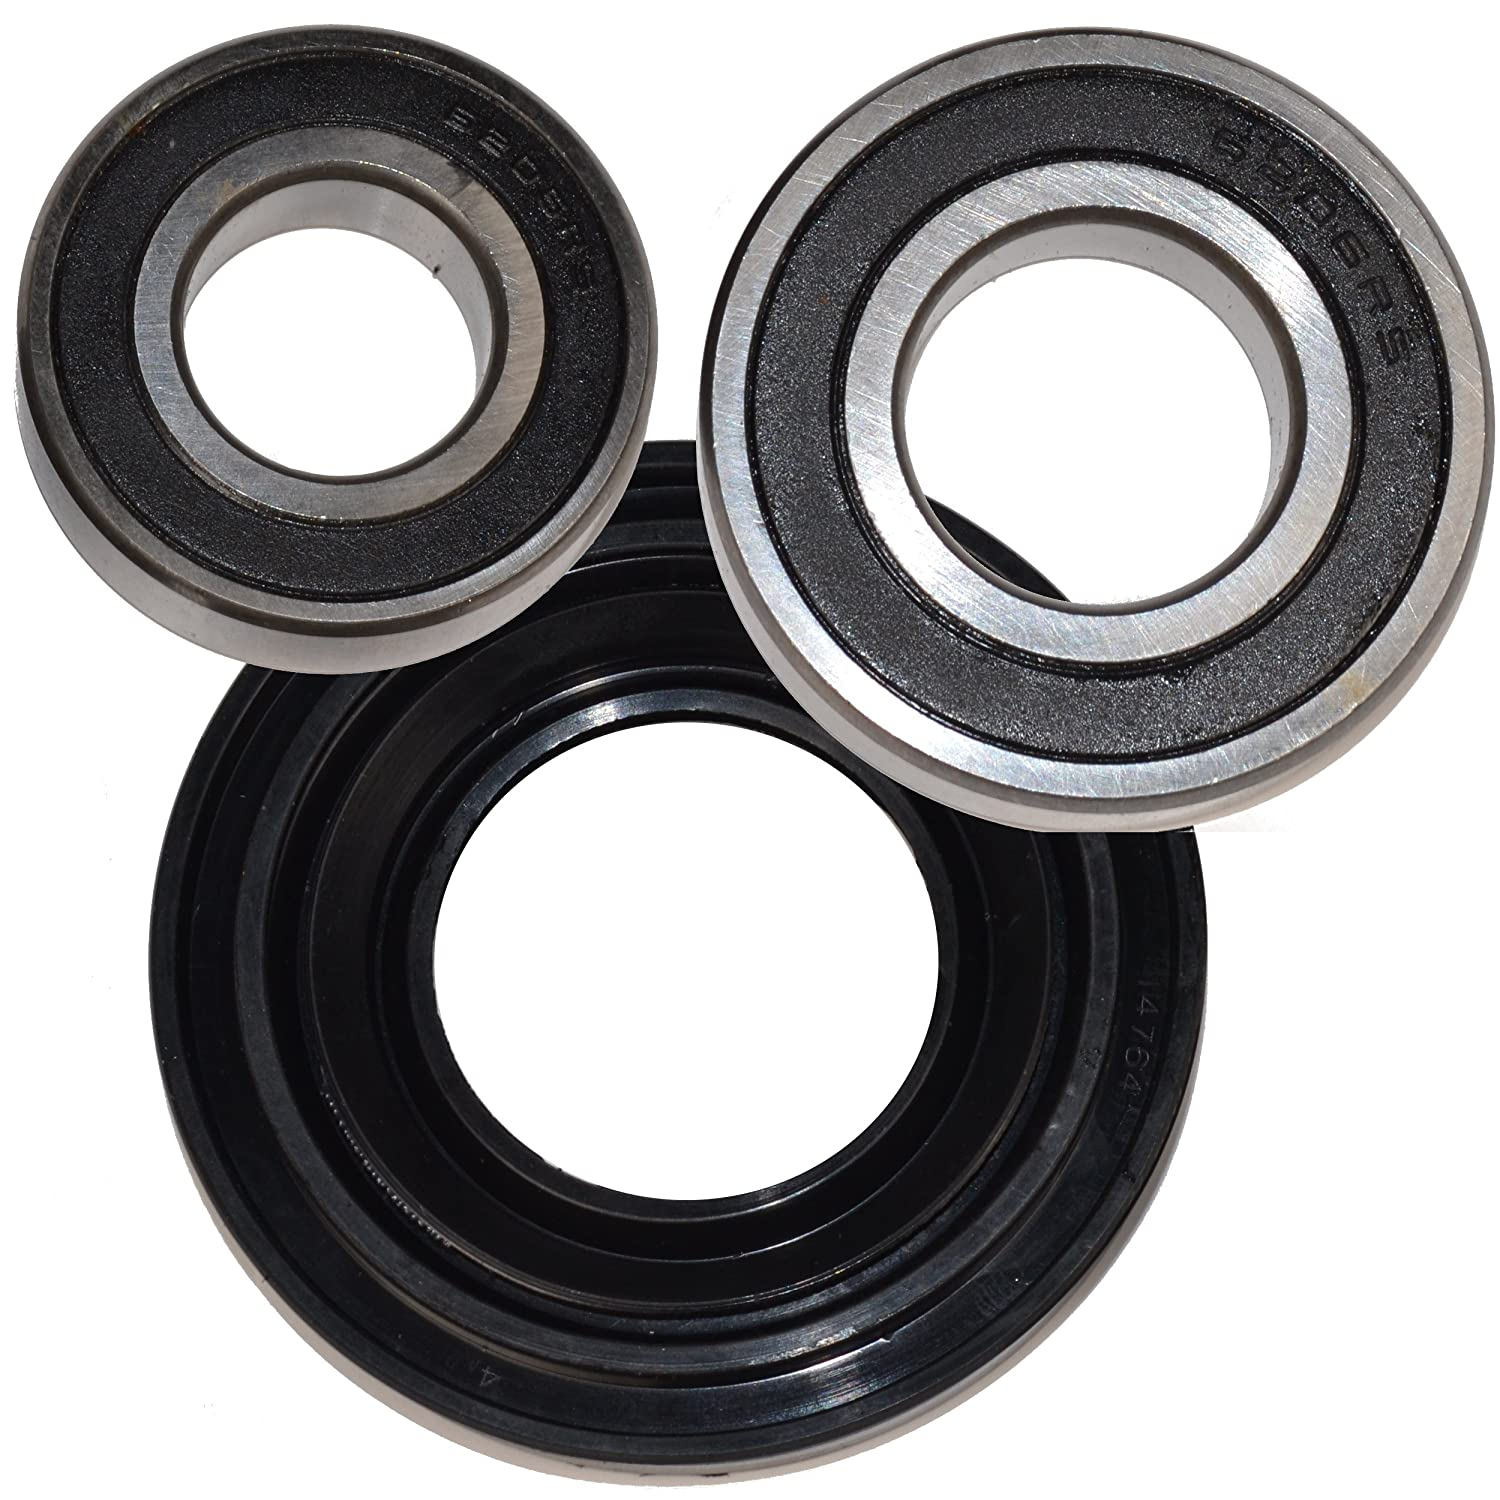 HQRP Bearing and Seal Kit for Whirlpool Duet Sport AP3970398 CHW9900VQ0 CHW9900VQ1 MWFW8300SW01 MWFW8300SW02 WFW8200TW00 WFW8300SW05 WFW9050XW01 Front Load Washer Tub + HQRP Coaster